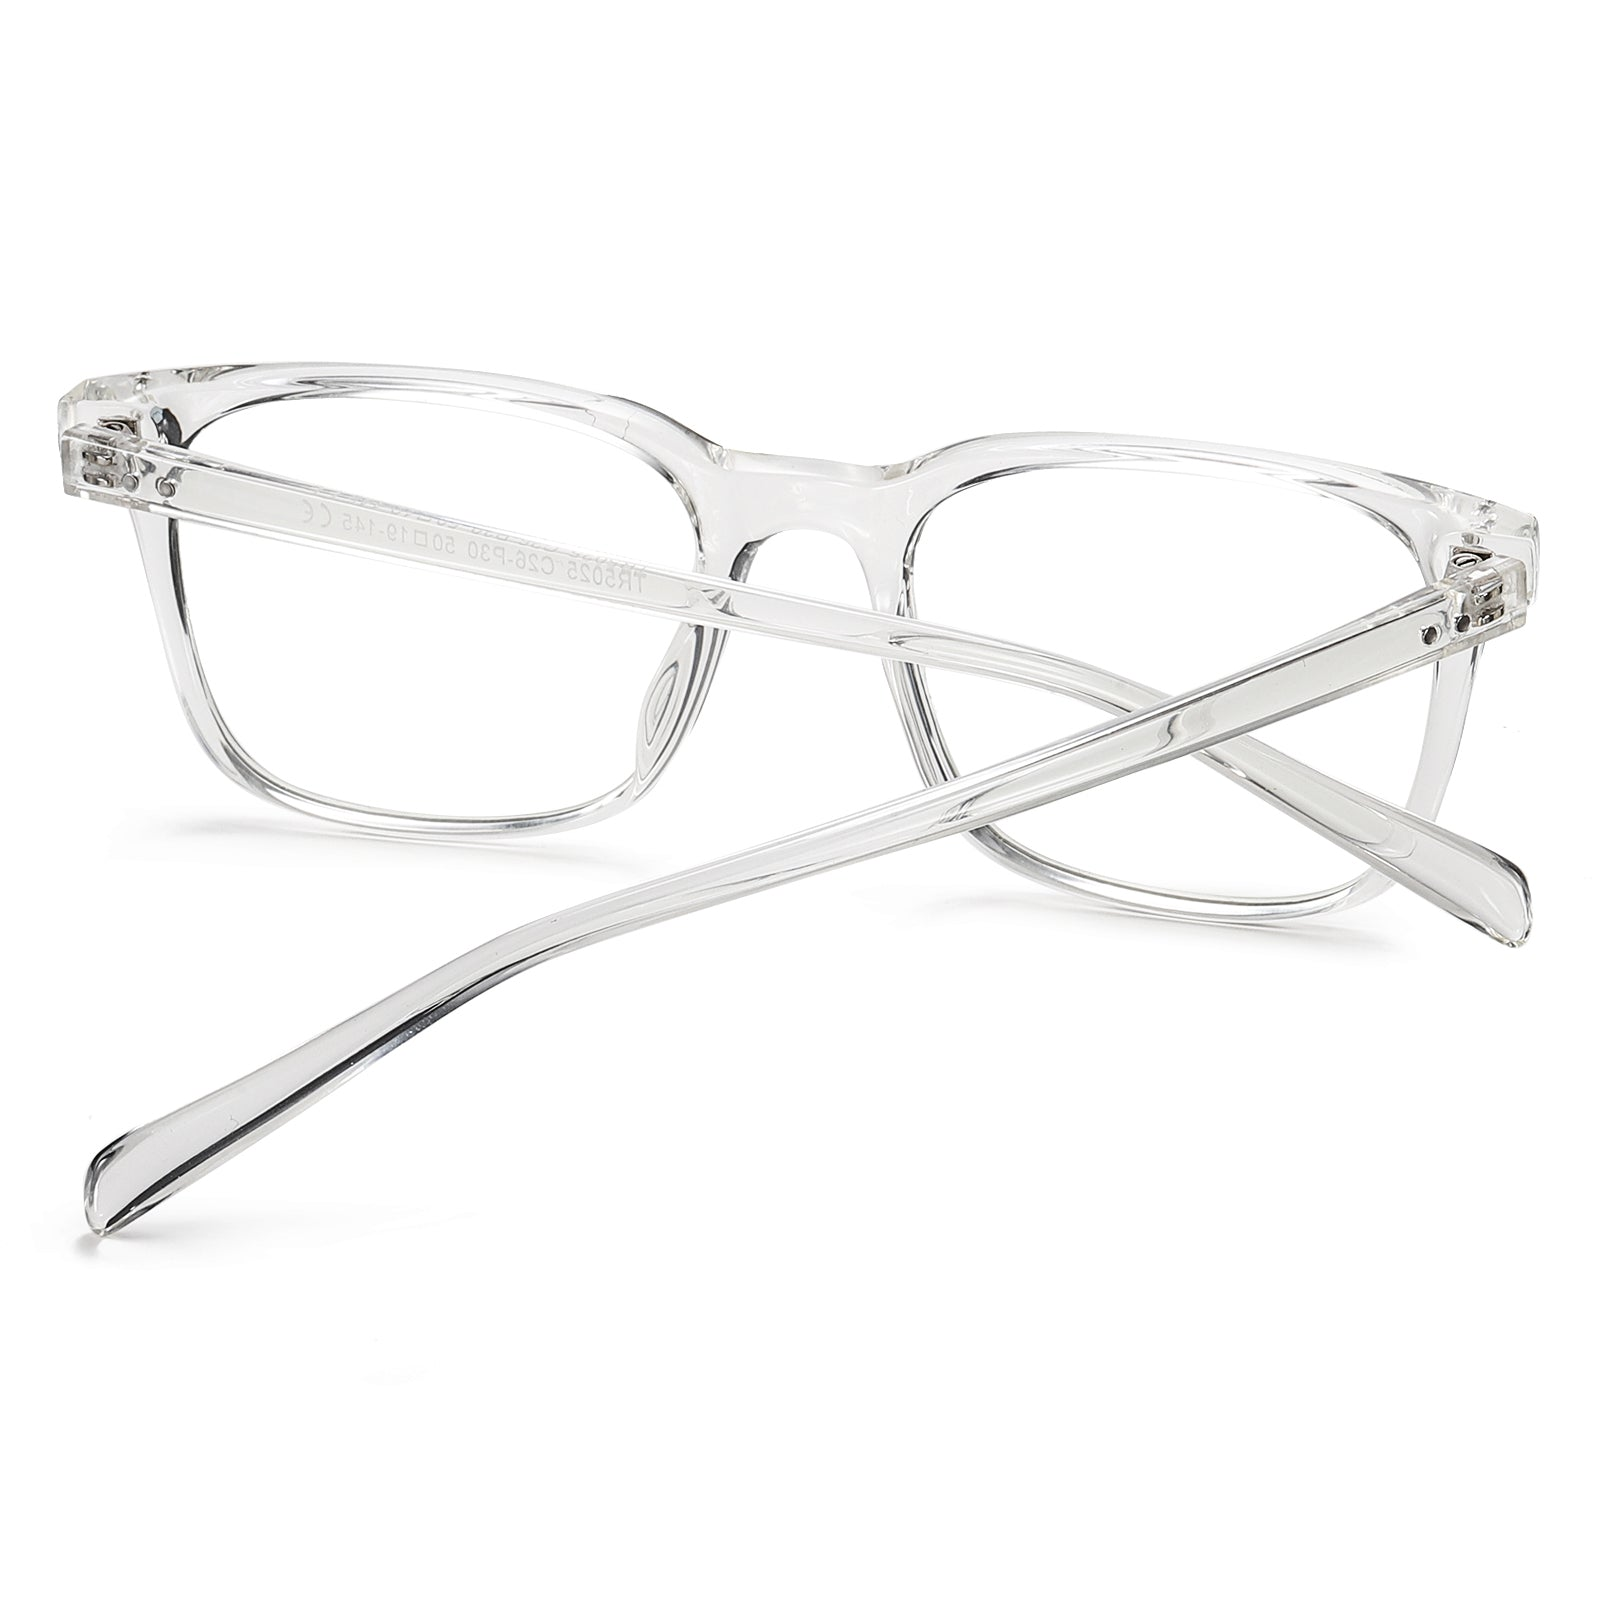 photochromic-eyeglasses-men-clear-frames-3